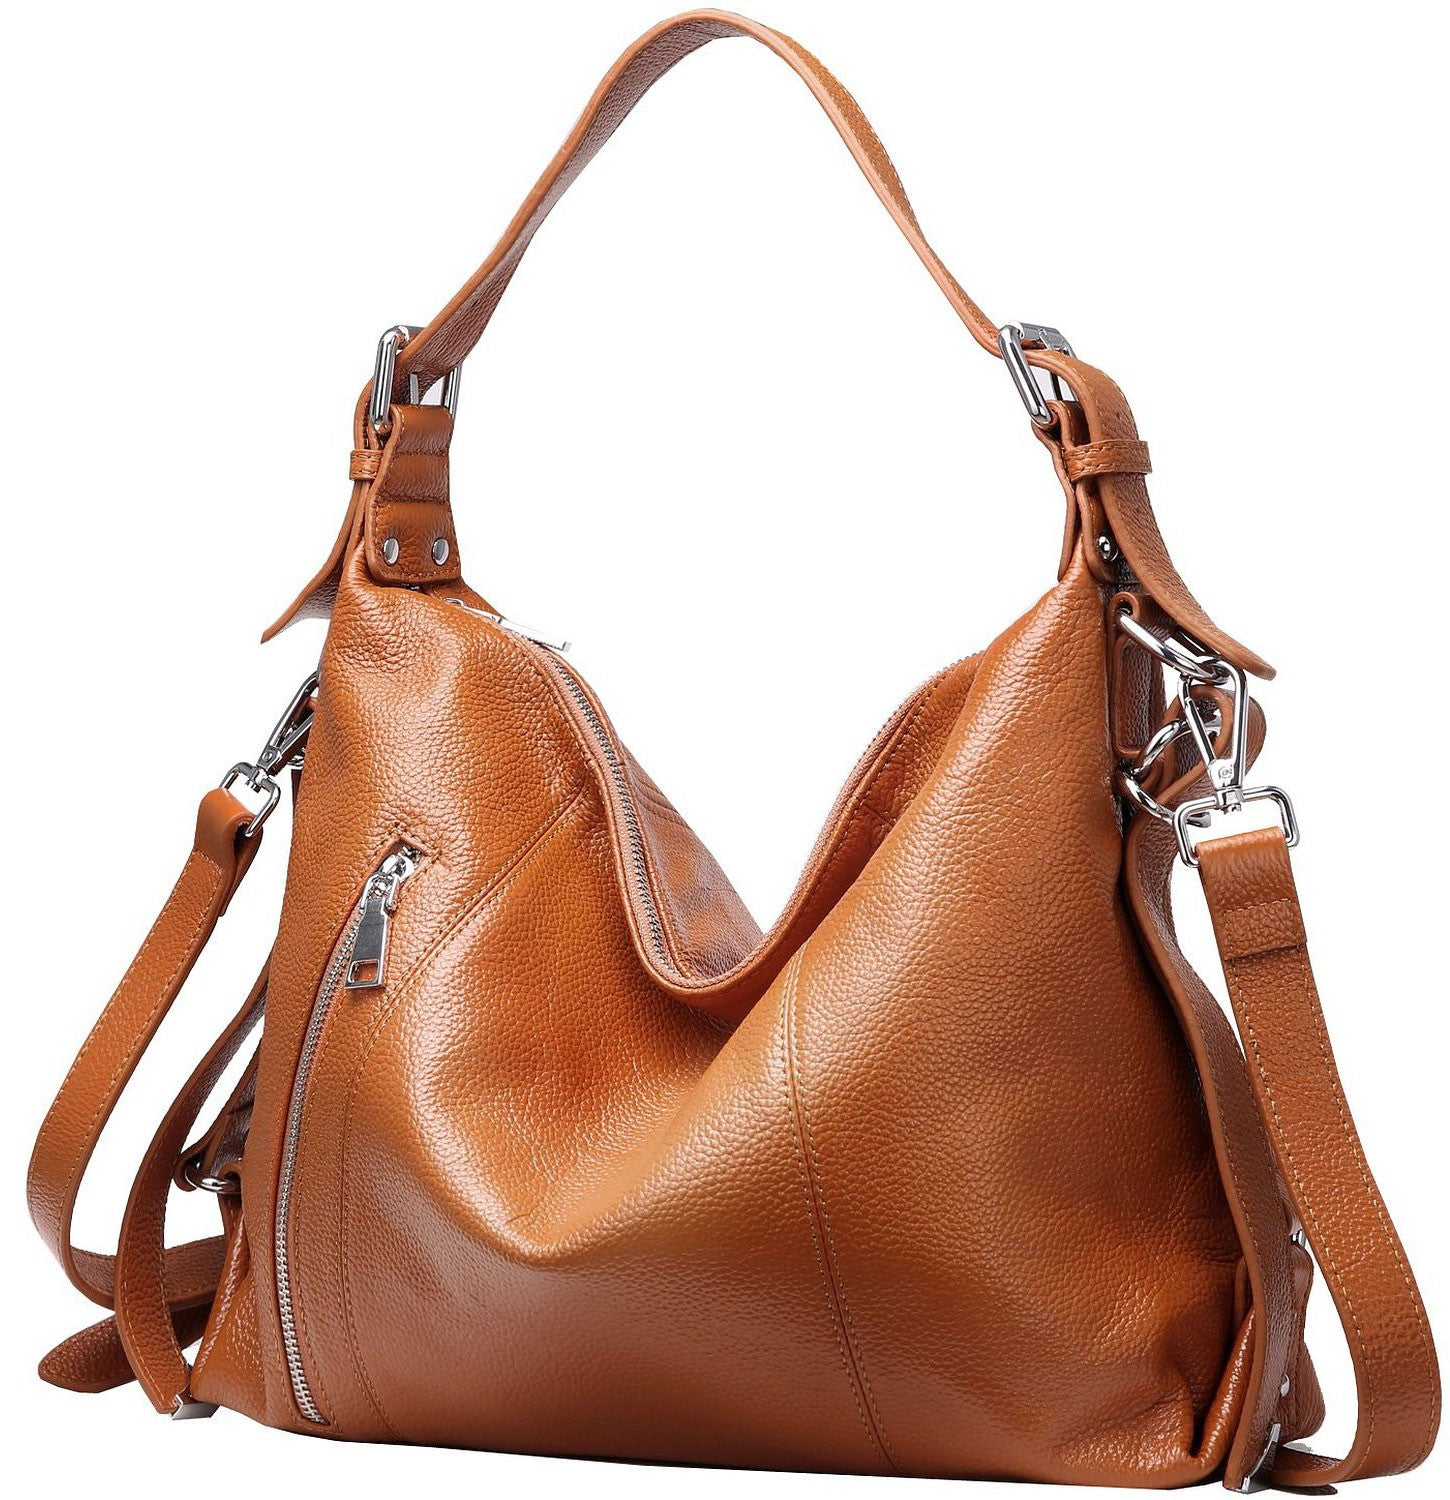 Women's leather crossbody bags with over the shoulder top handle. Light brown